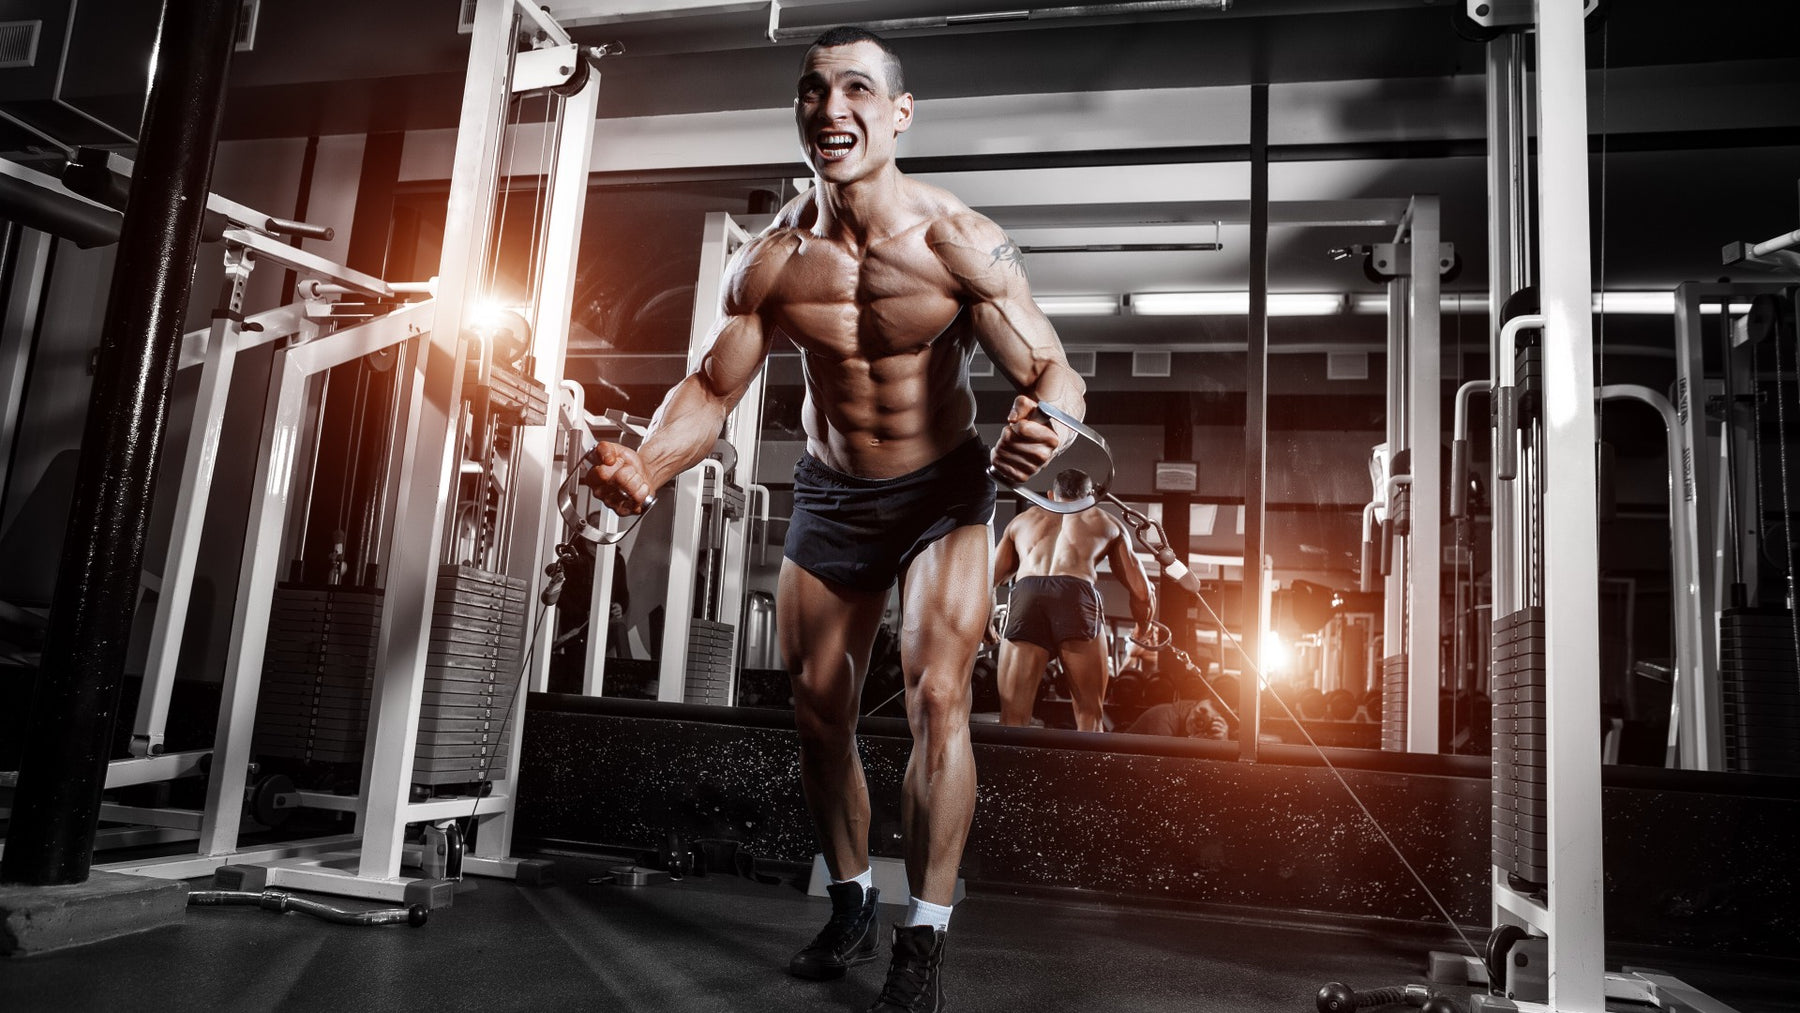 10 Best Cable Exercises for Building Muscle